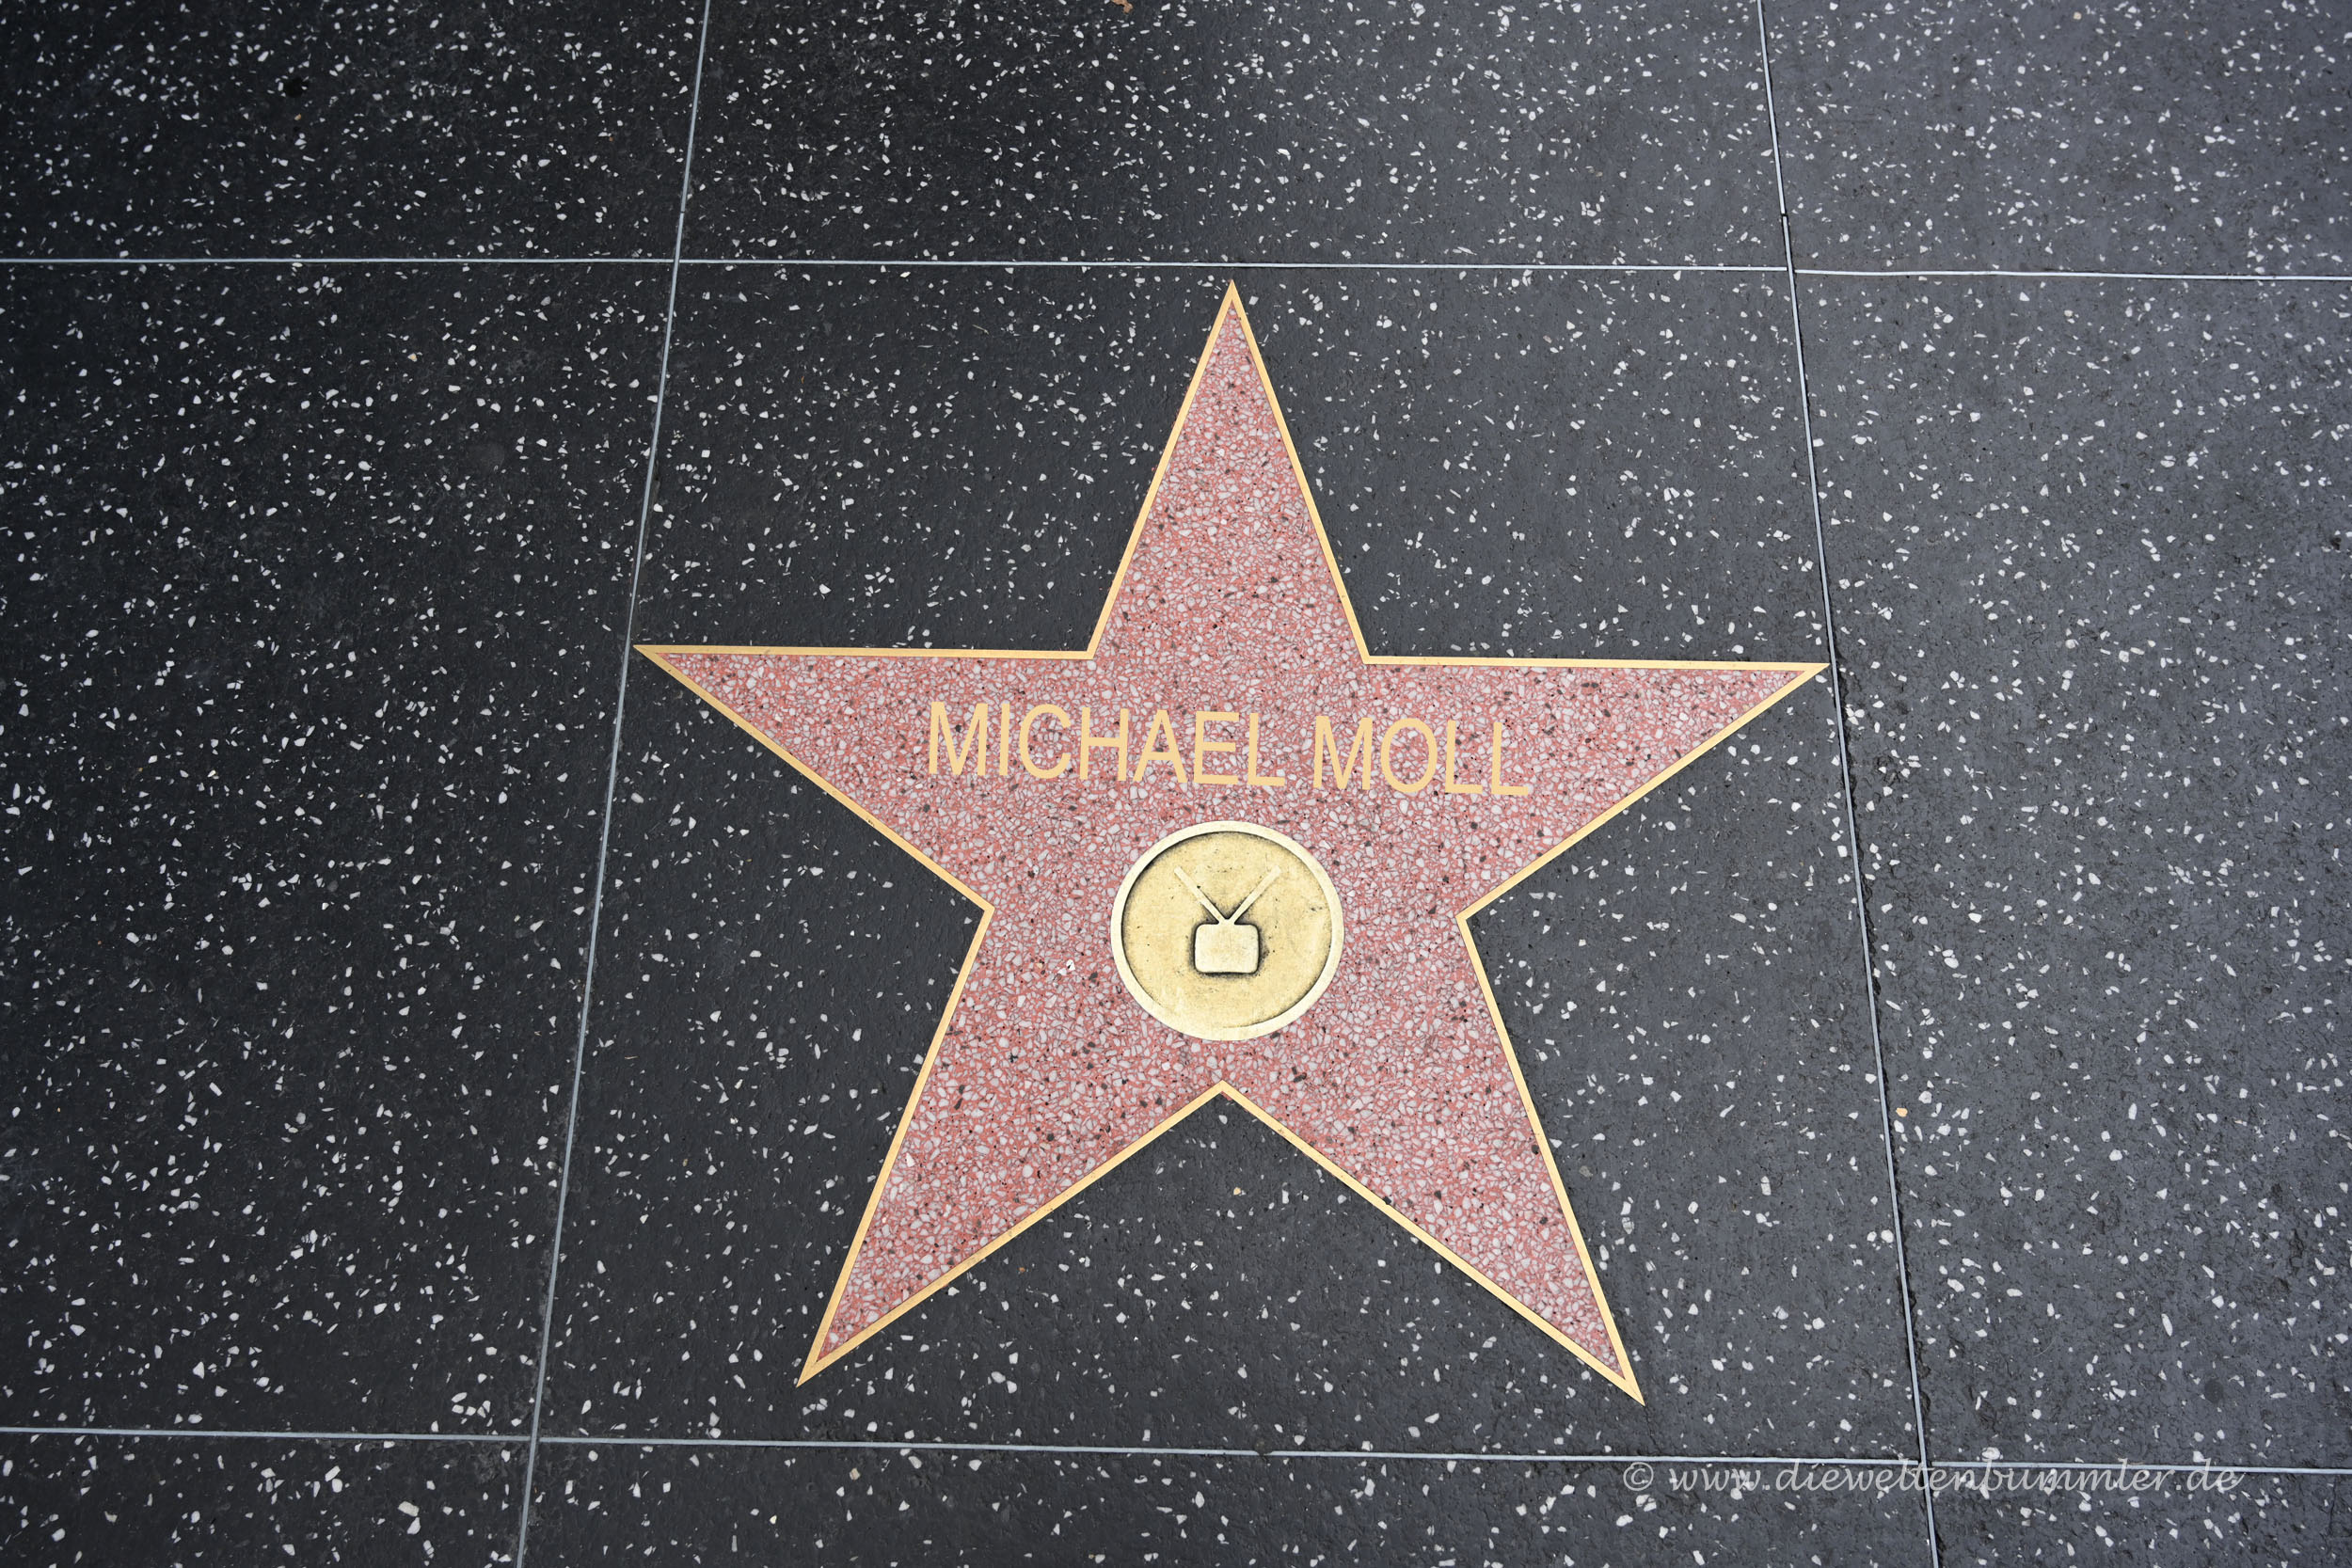 Michael Moll auf dem Walk of Fame